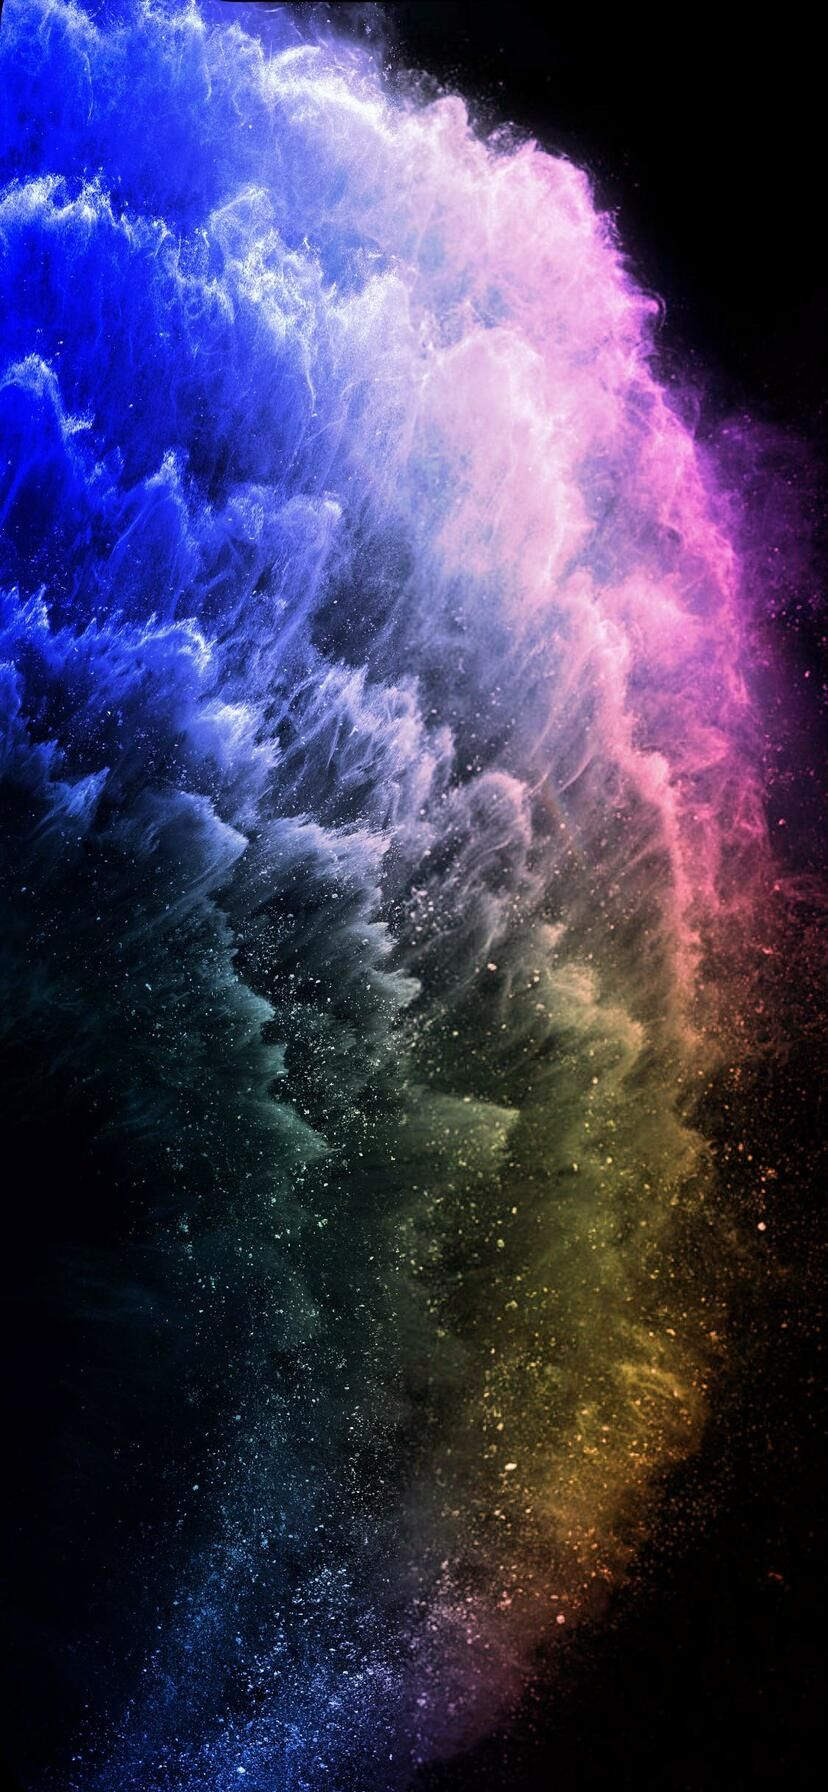 Iphone 11 Wallpaper Hd 4k Download In 2020 Iphone Homescreen Wallpaper Hd Wallpaper Iphone Iphone Wallpaper Ios